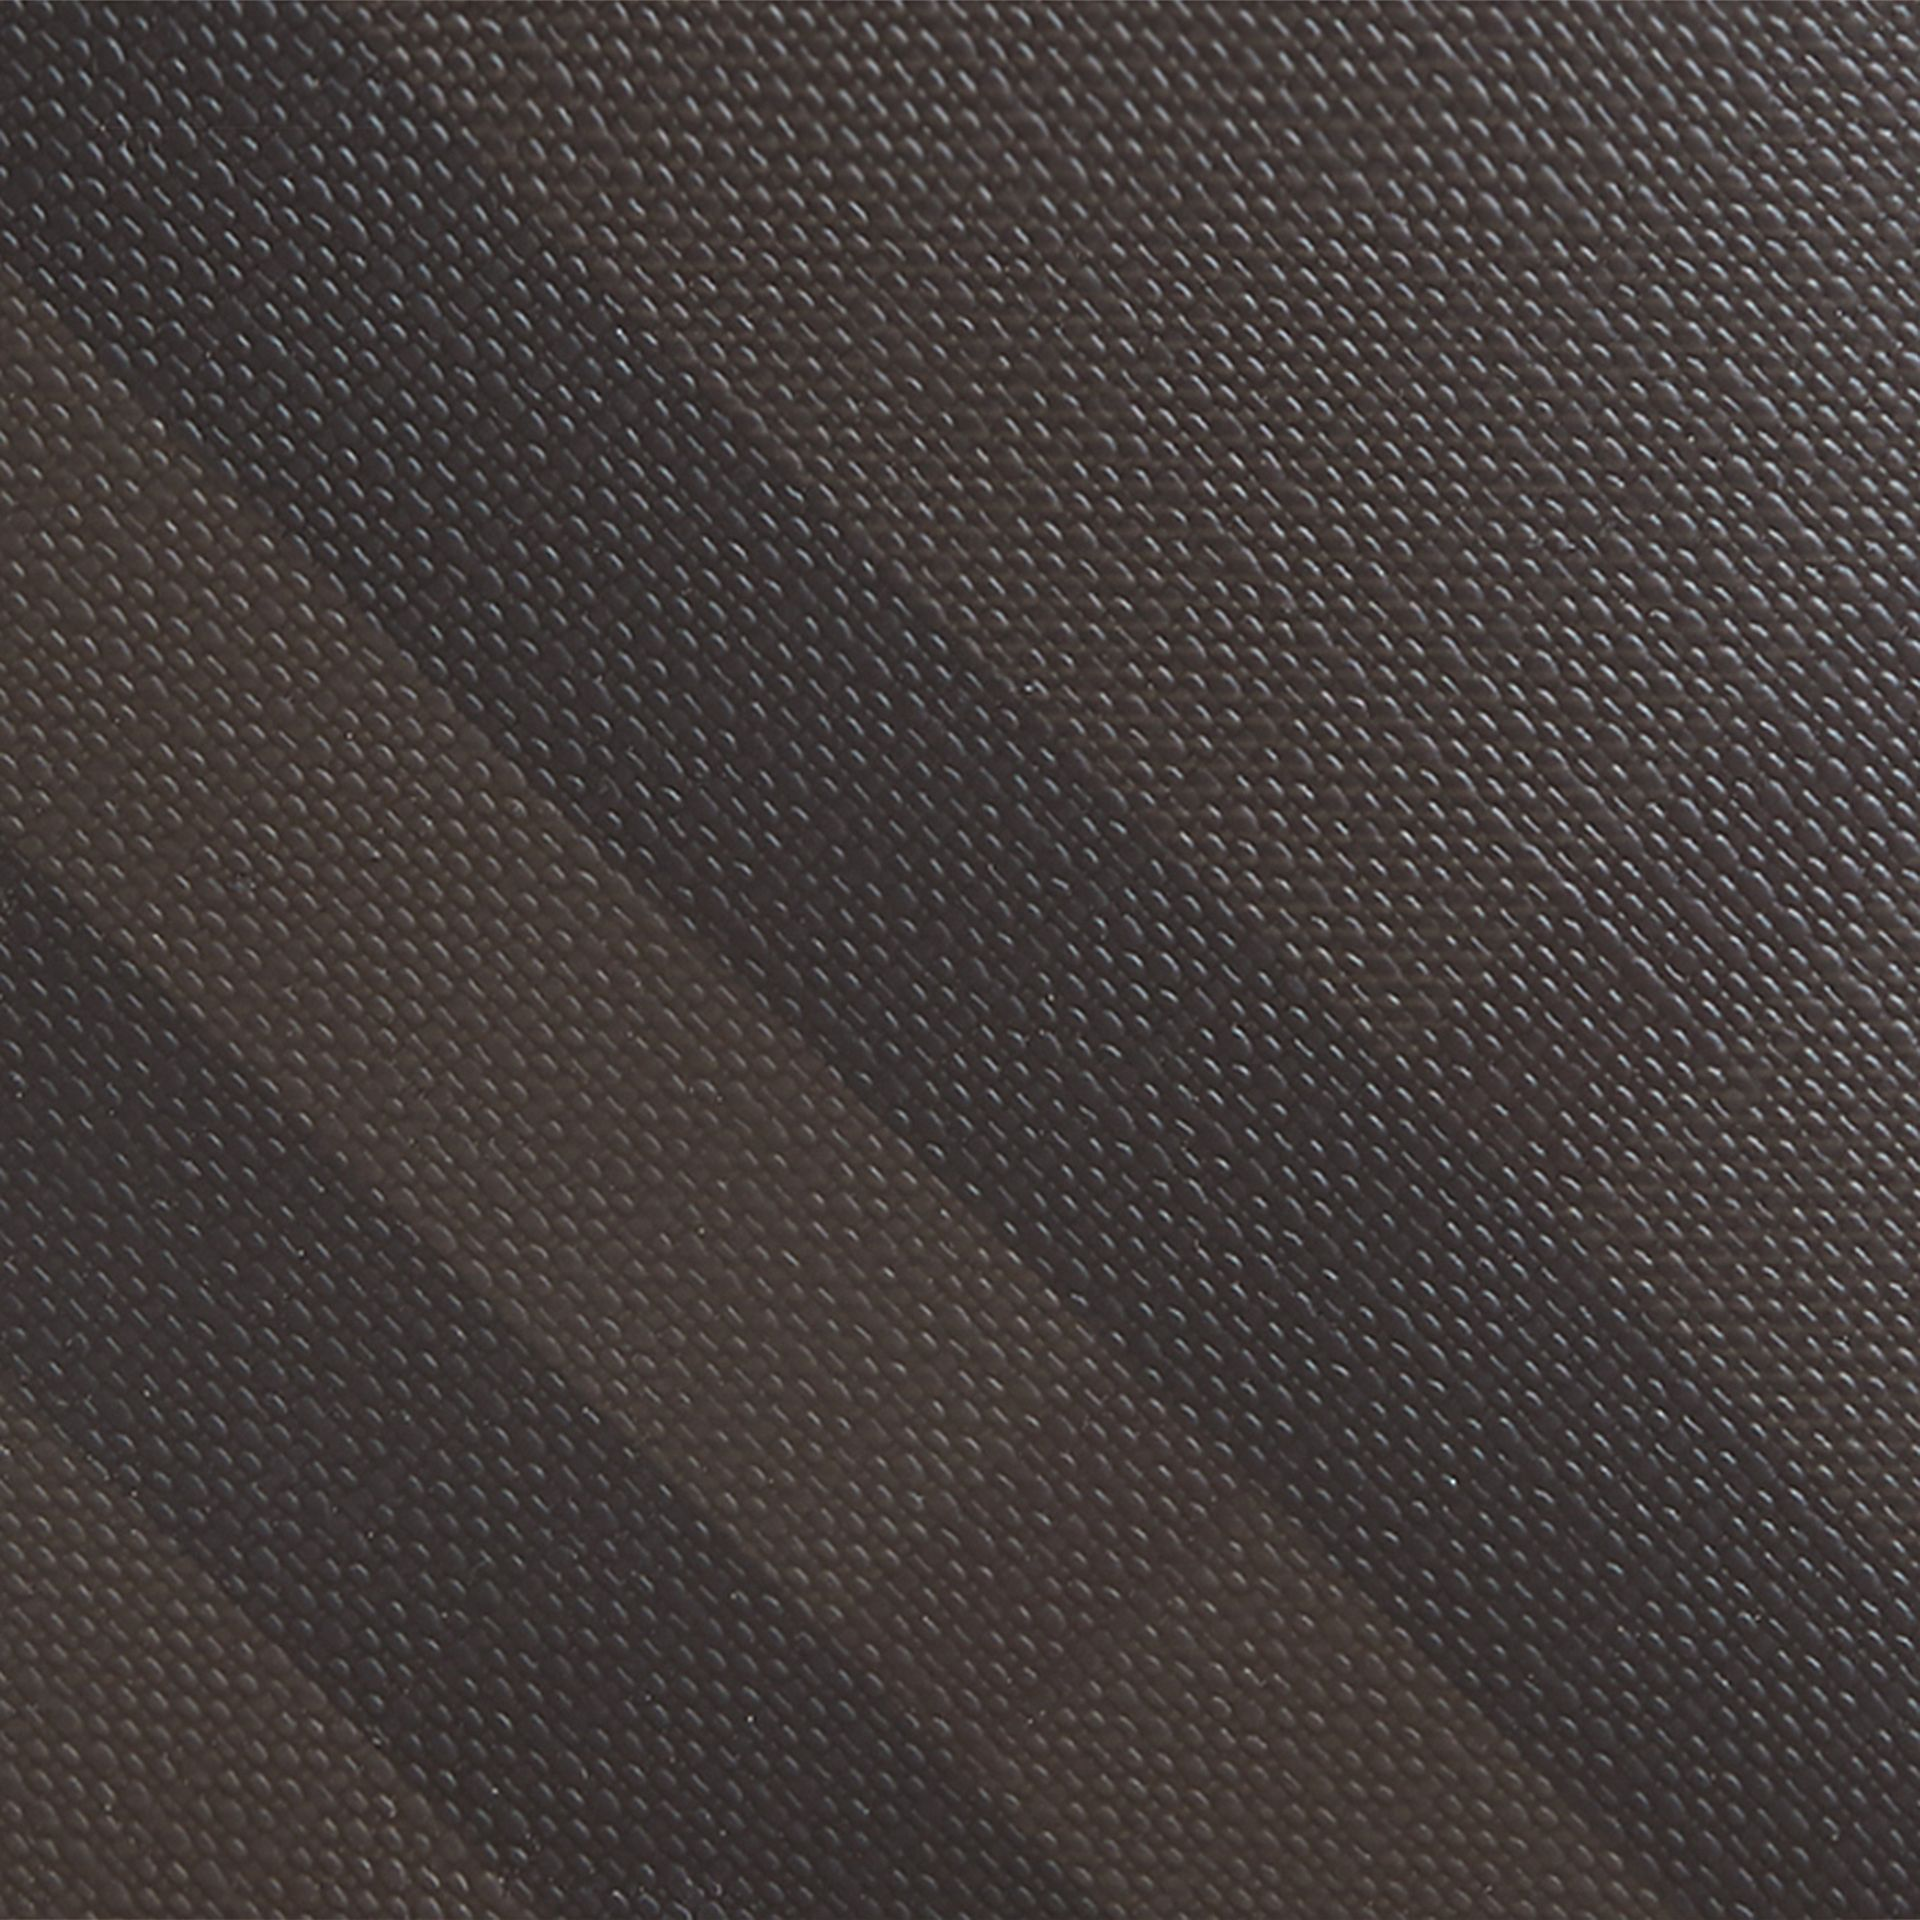 London Check International Bifold Coin Wallet in Chocolate/black - Men | Burberry United Kingdom - gallery image 1